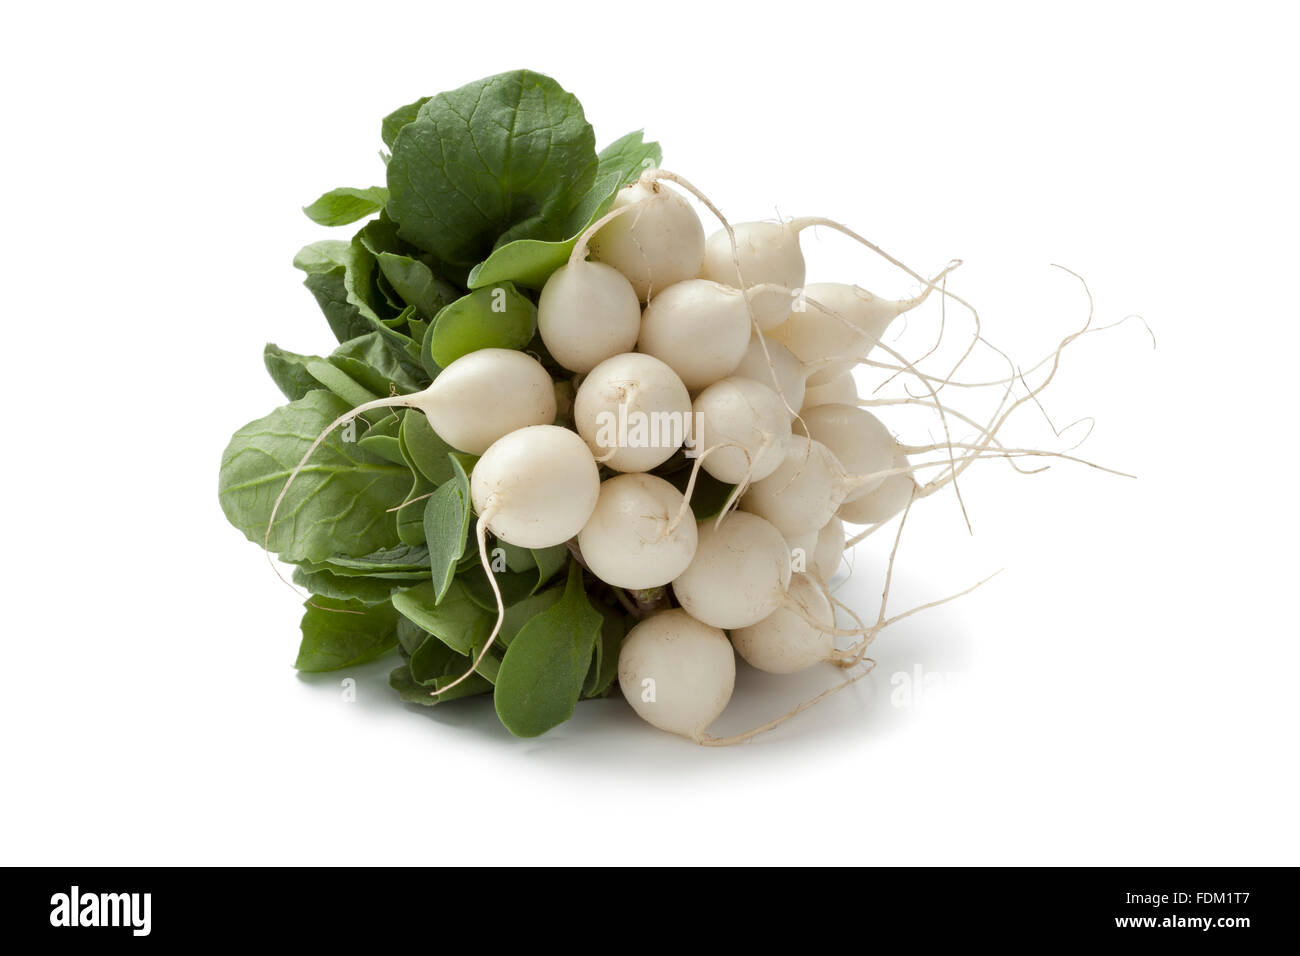 Bunch of fresh white Radish on white background - Stock Image